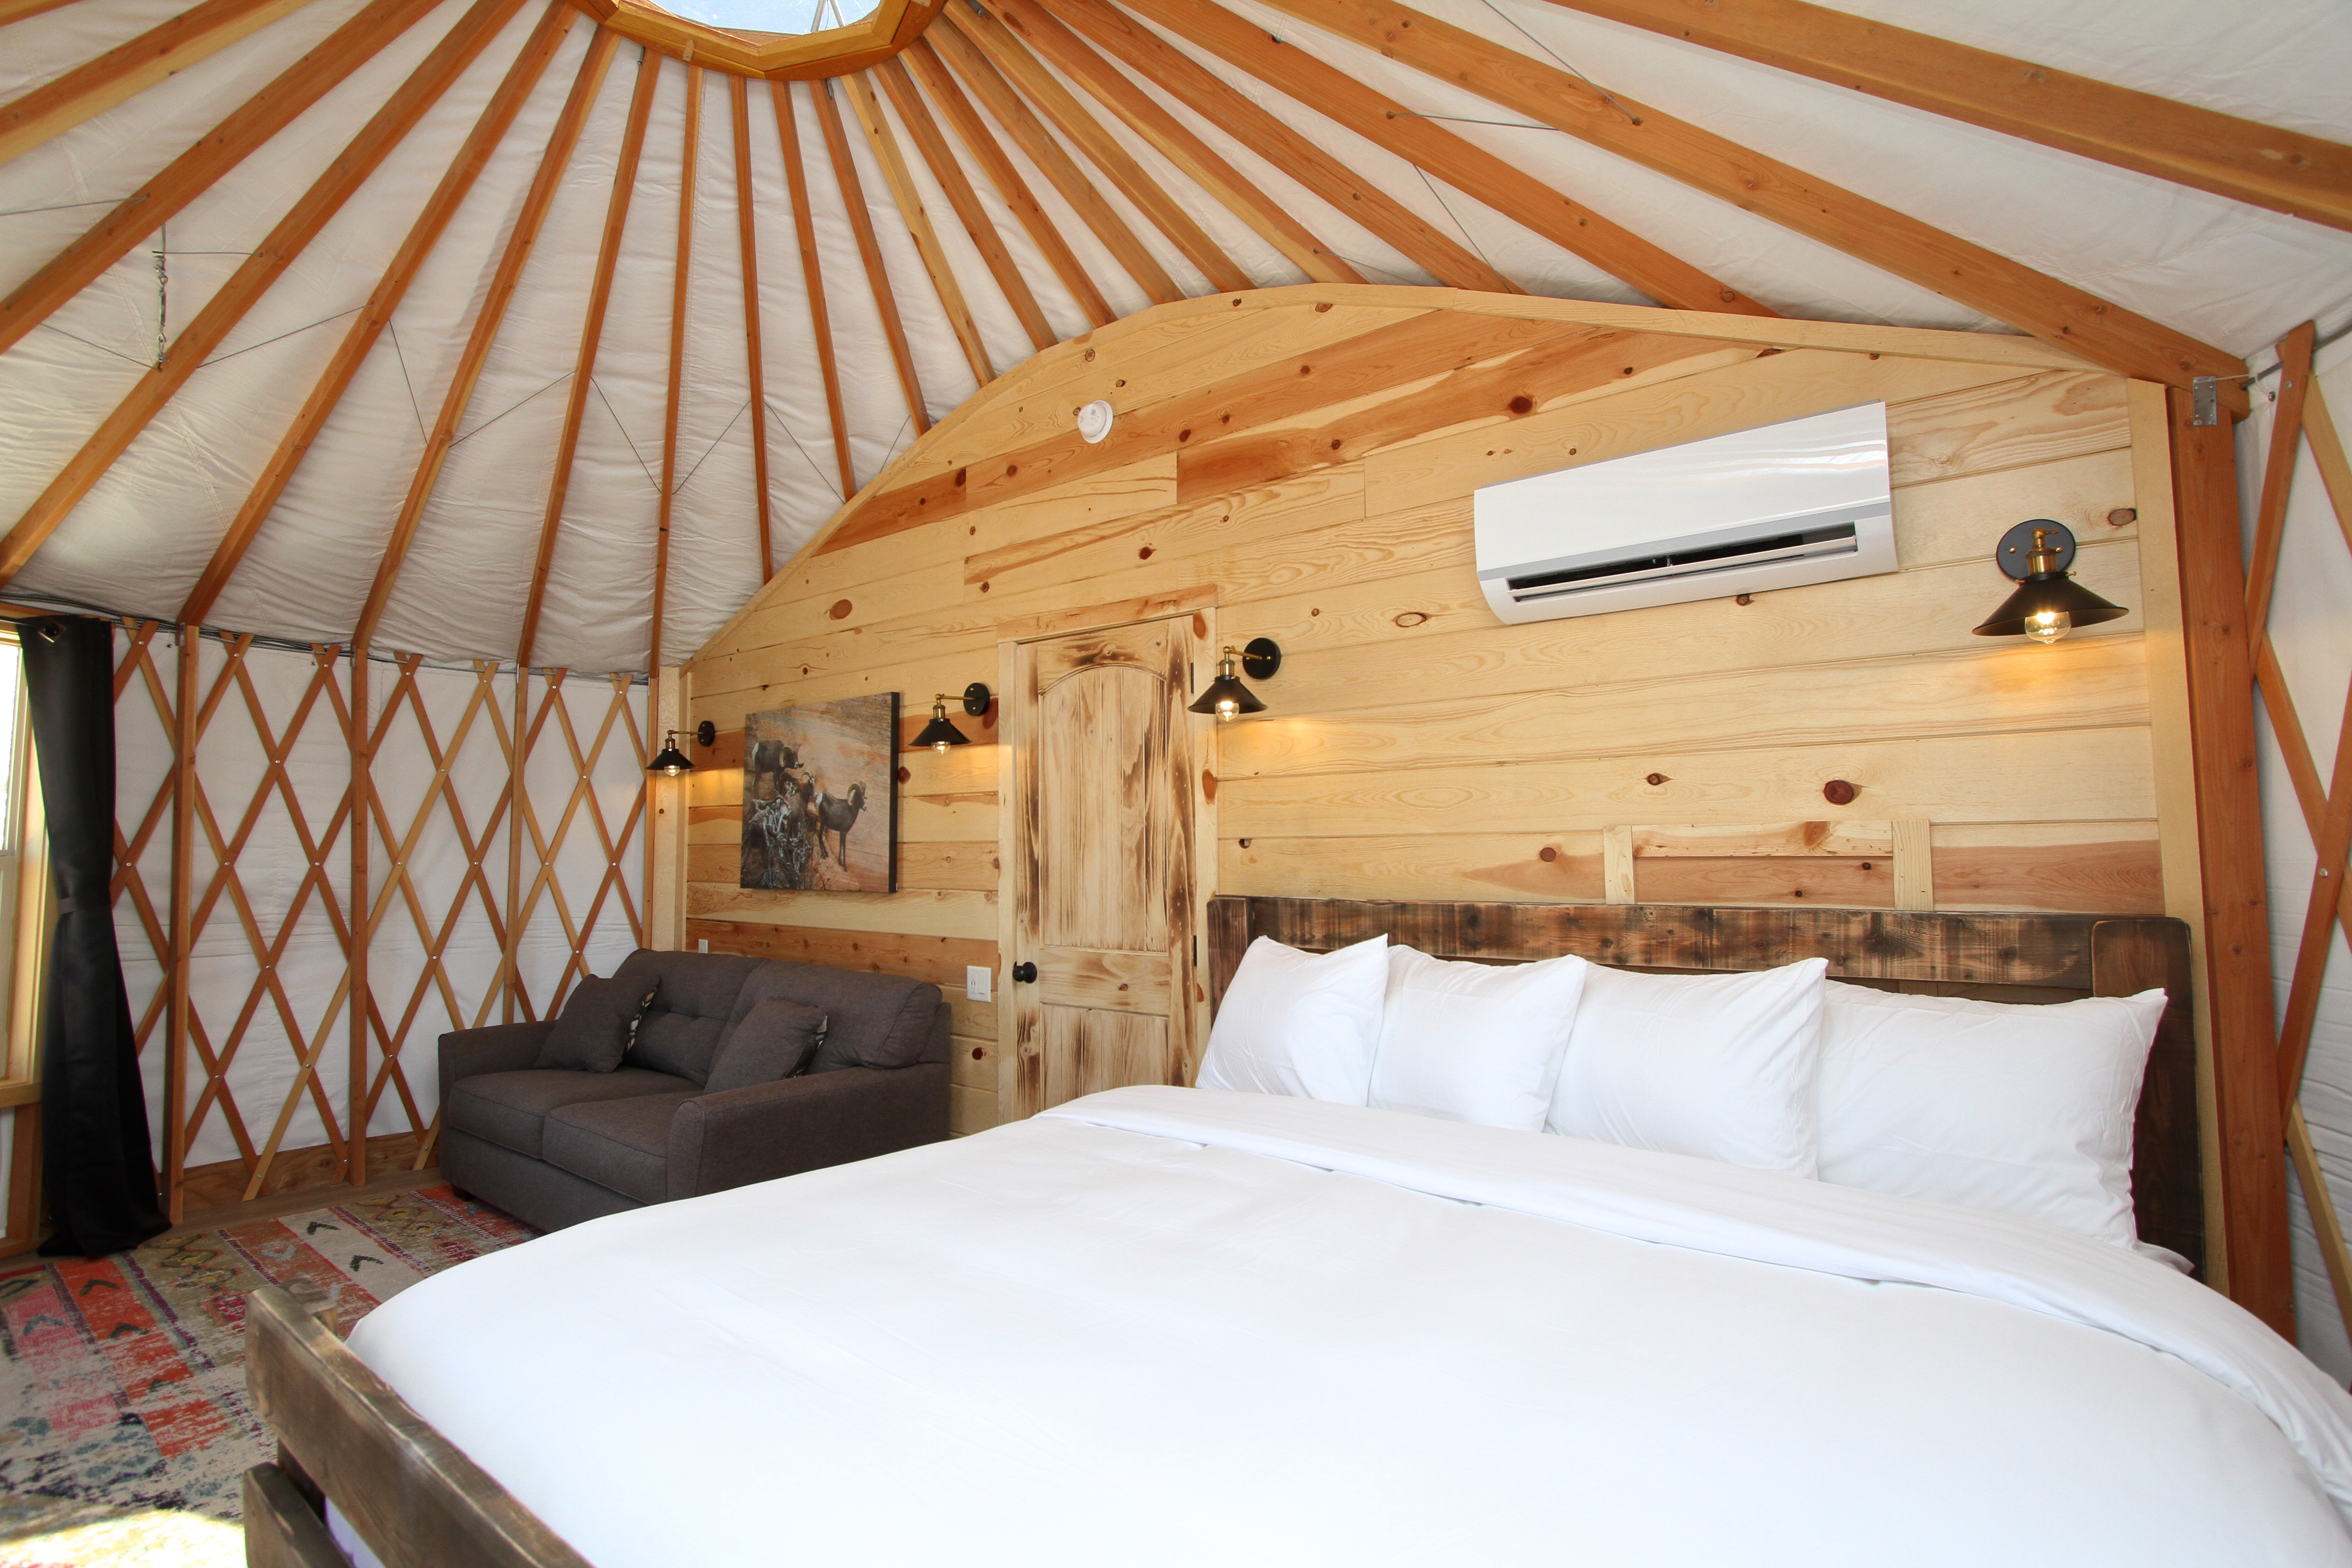 Yurt Bed and Sofa Right